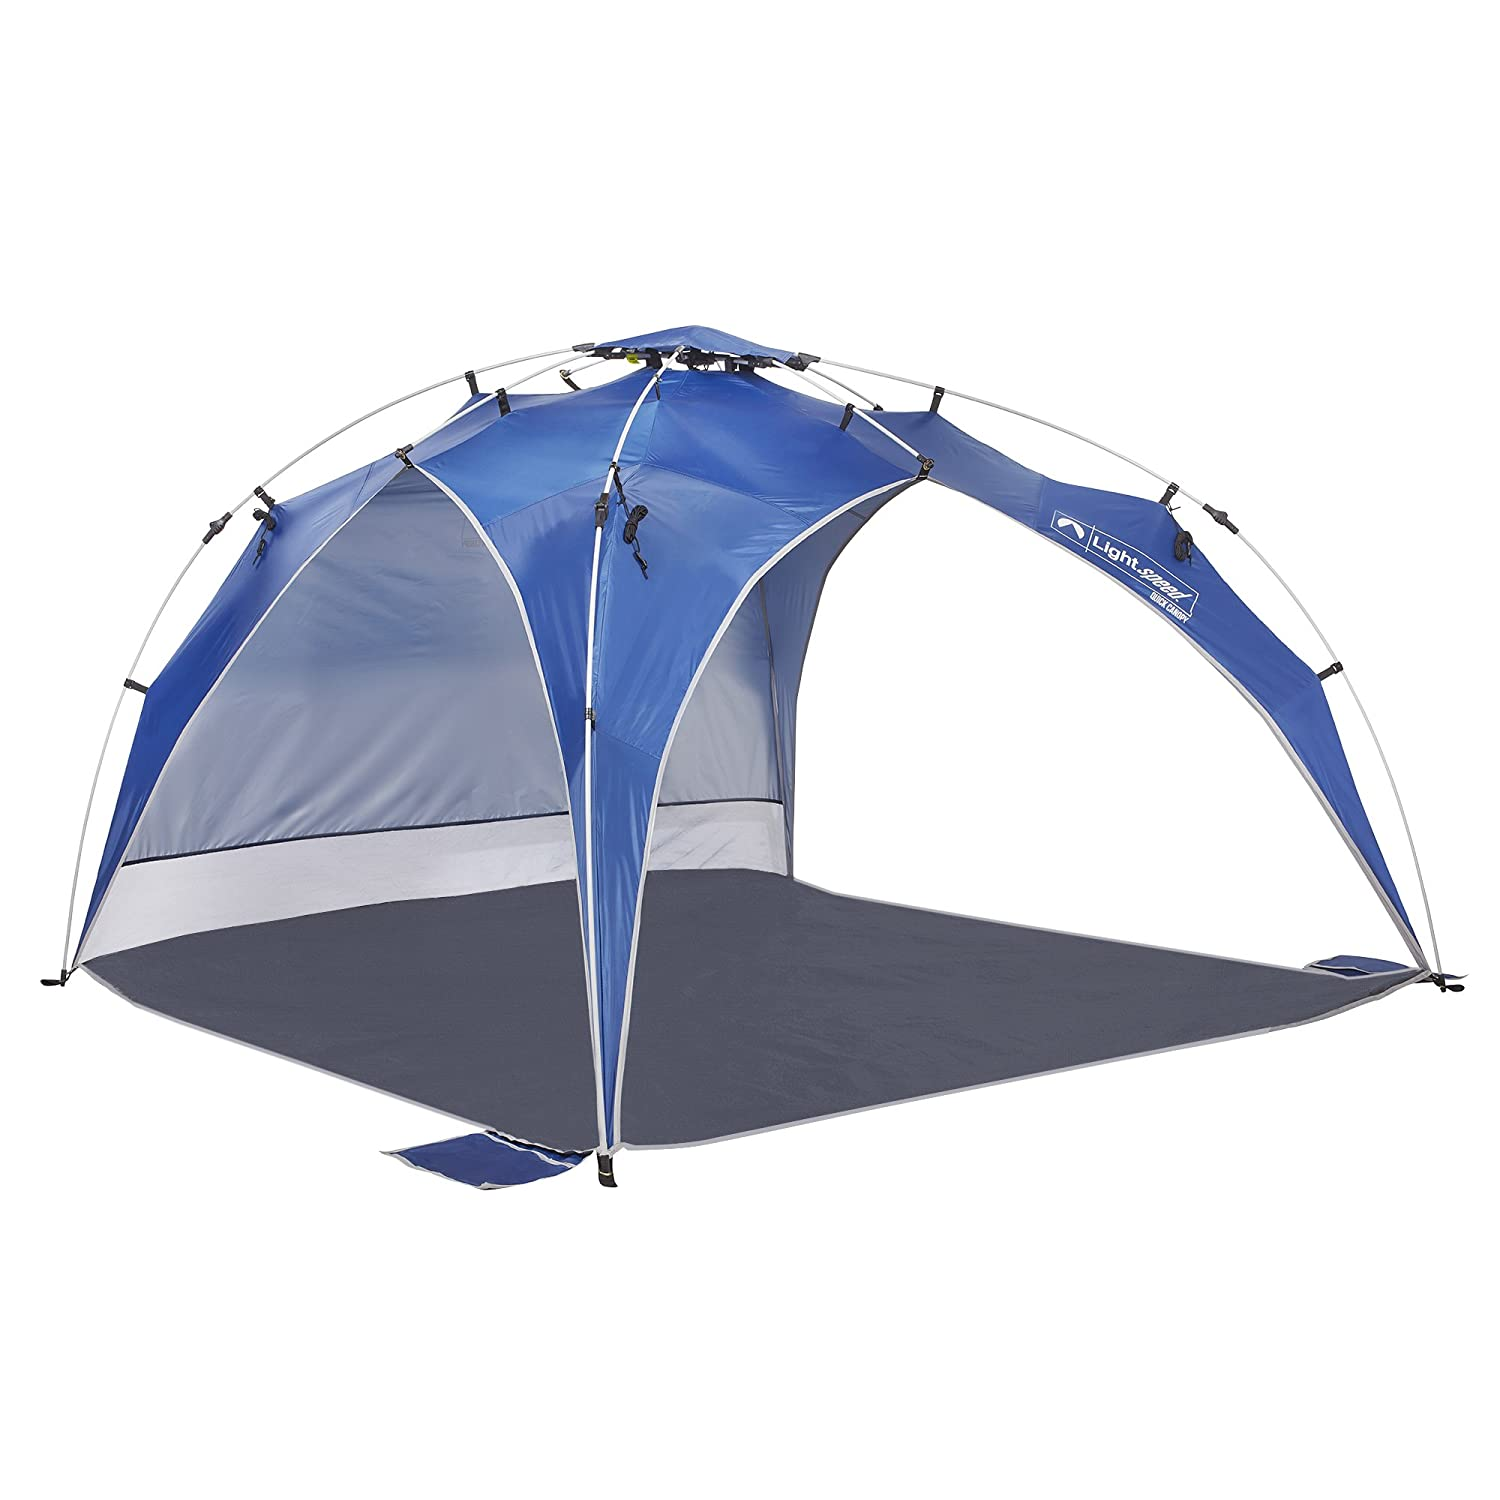 mountaineering tri tent view alps l lynx review person awning larger extreme season